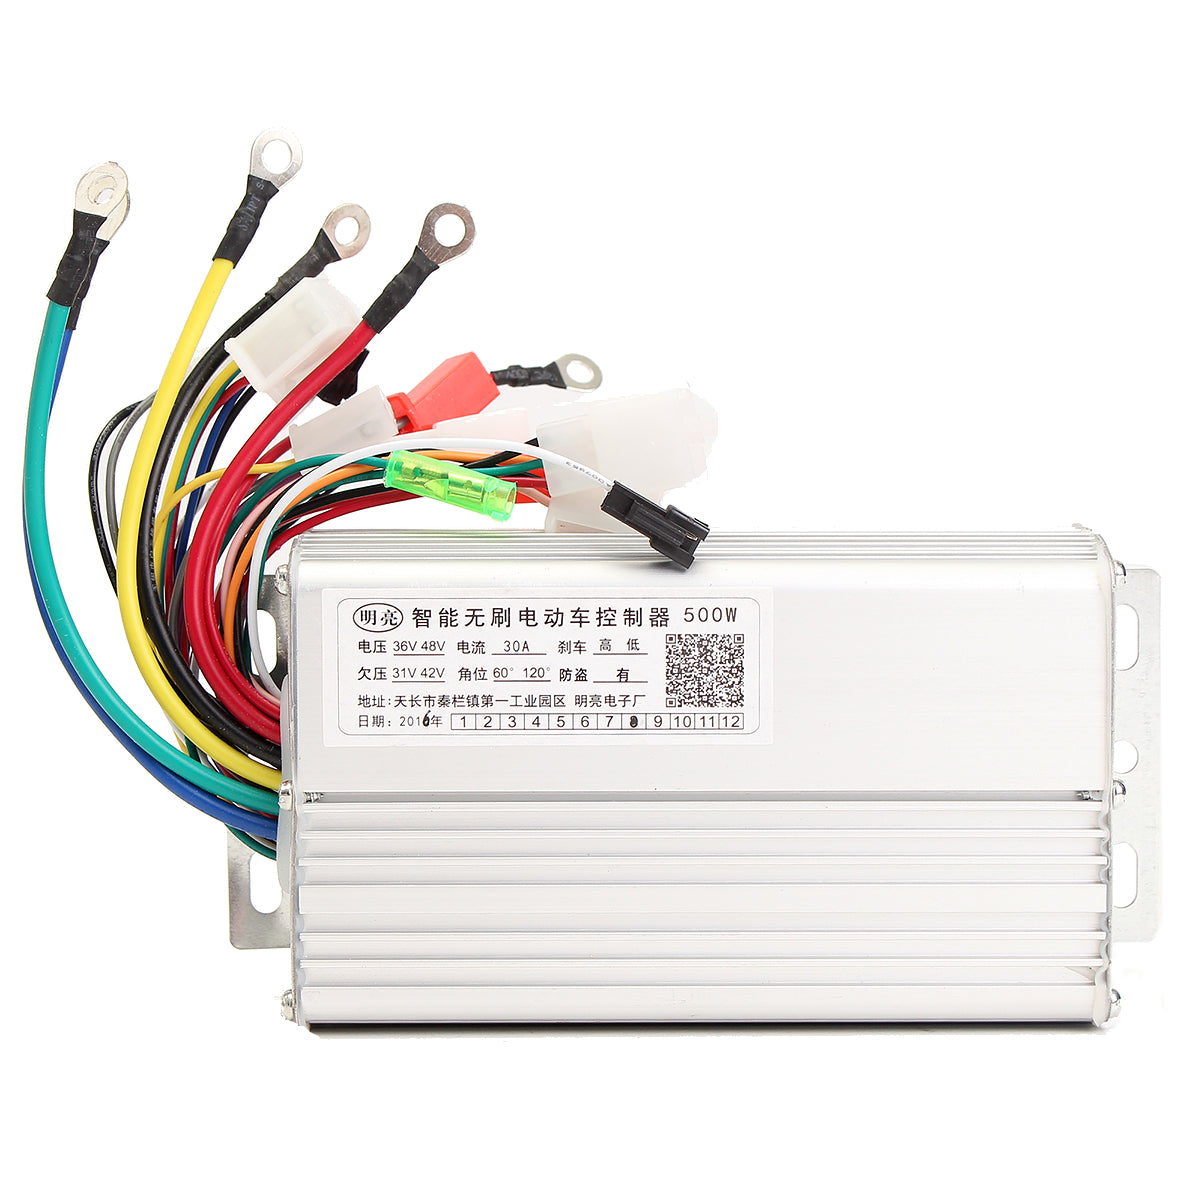 Dc 12v 24v 36v 500w Brushless Motor Controller Hall Balanced Pwm Speed For 300w Cnc Spindle Kits Support Ac And 48v 30a Electric Scooters Bike